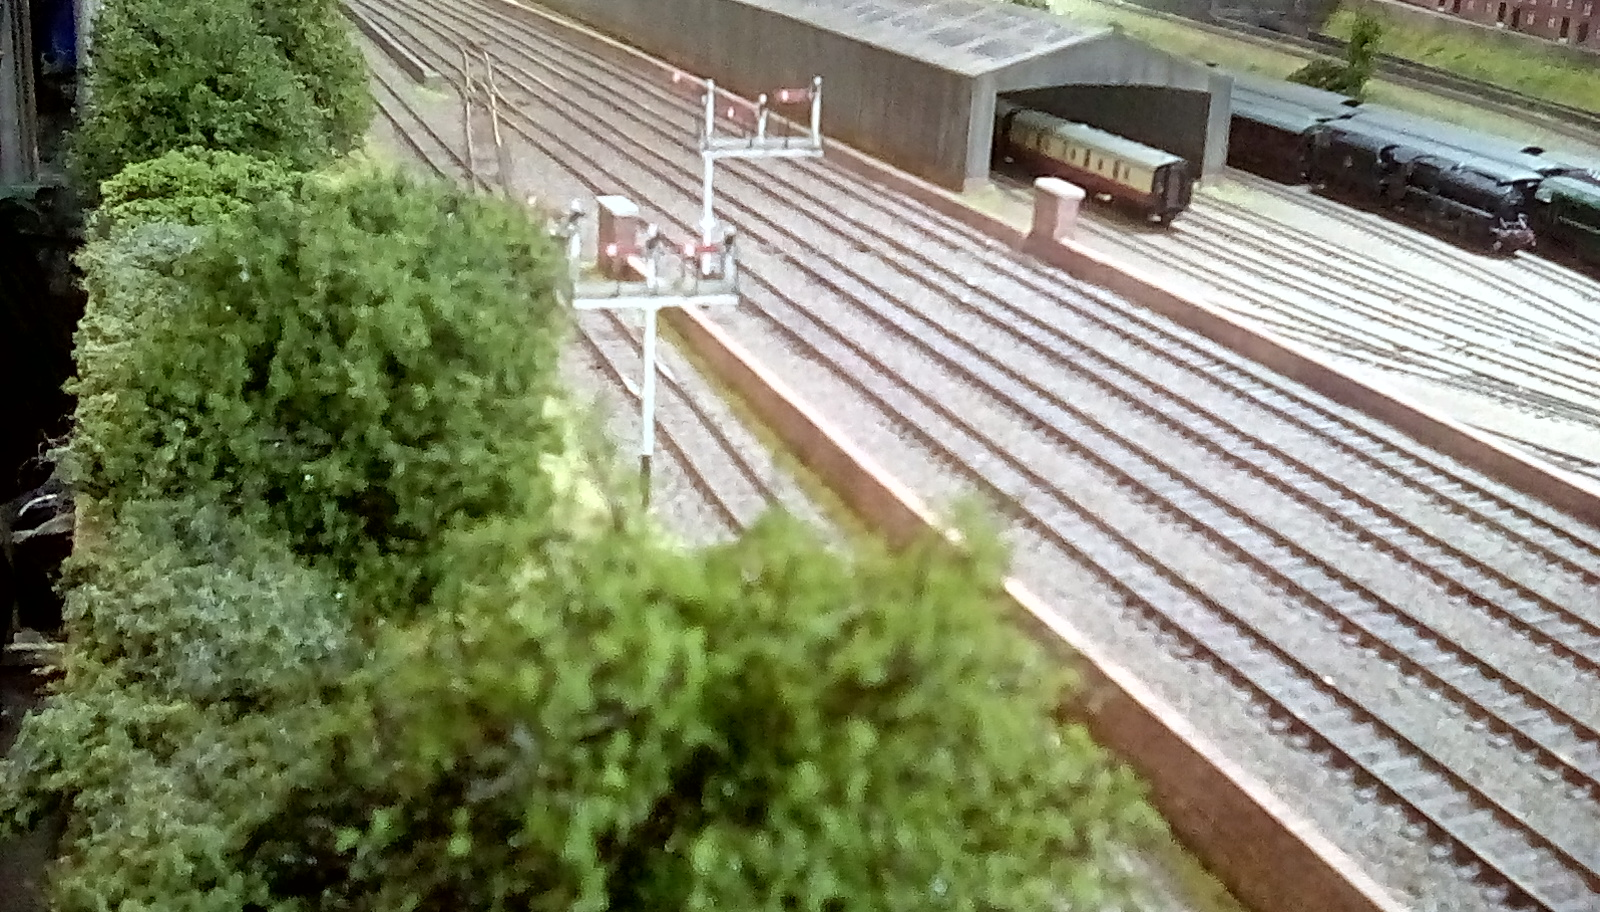 Carriage sheds and signals